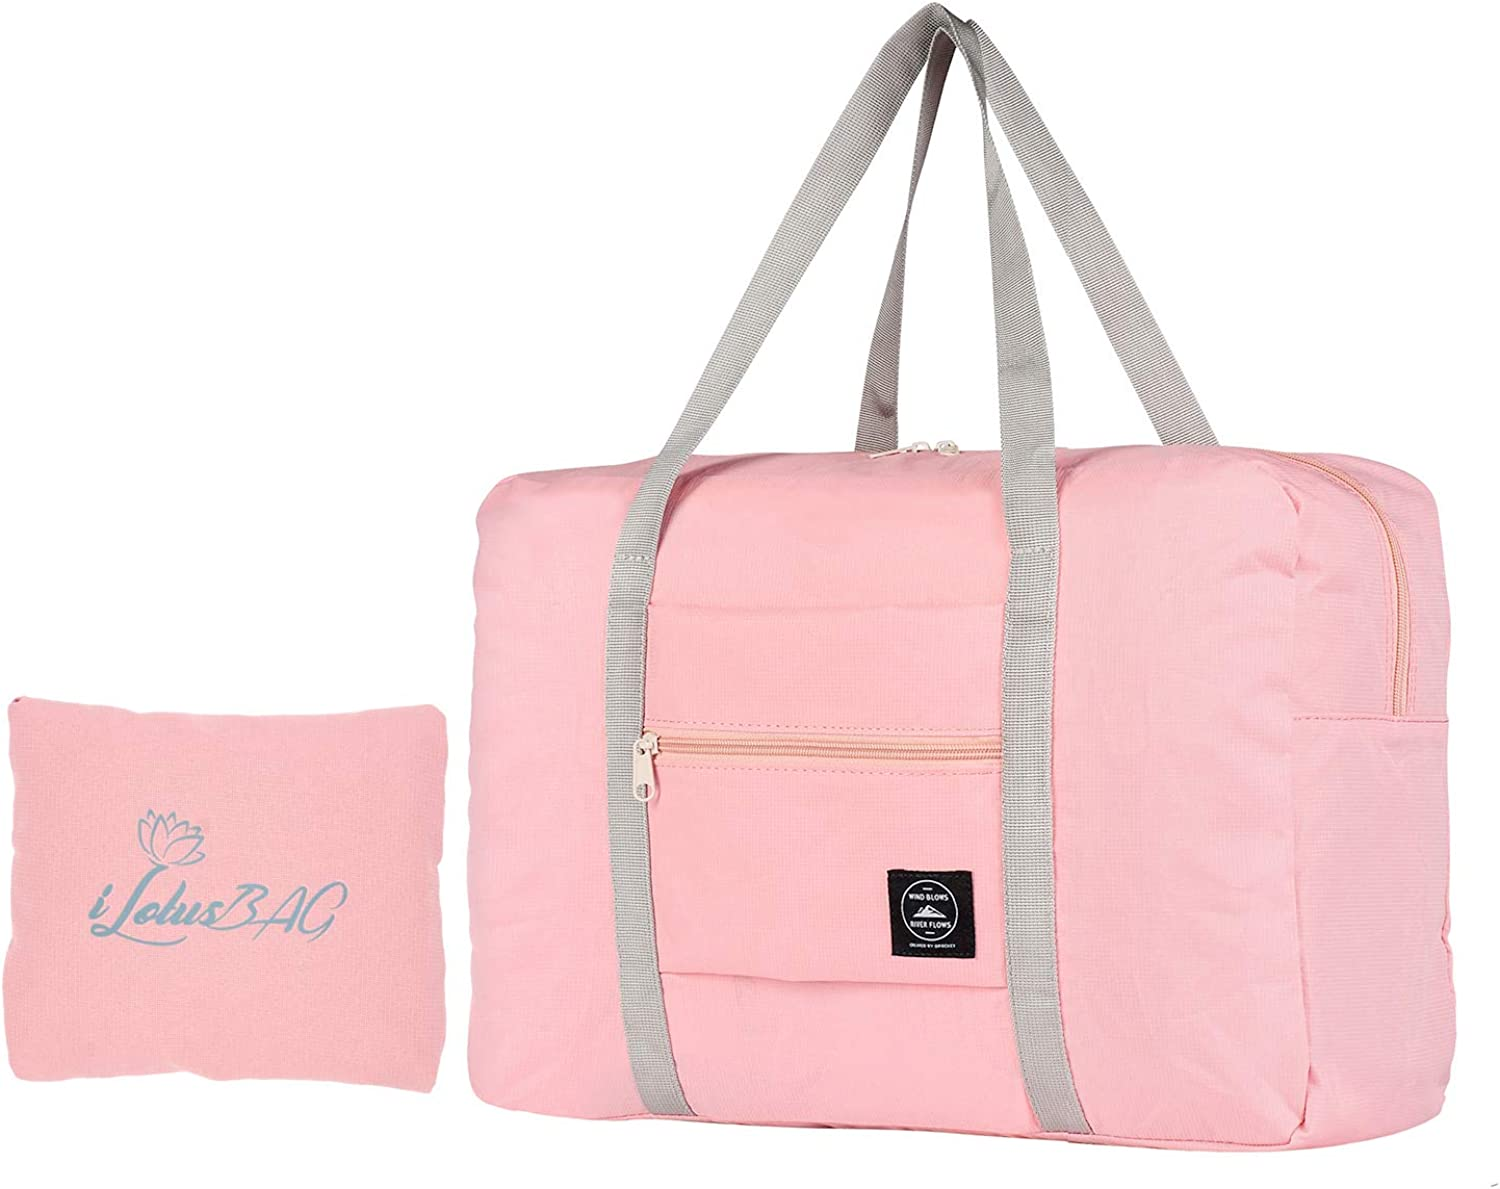 iLotusBAG Foldable Travel Duffel Bag Tote Carry on Luggage Lightweight Nylon Sport for Women Girls